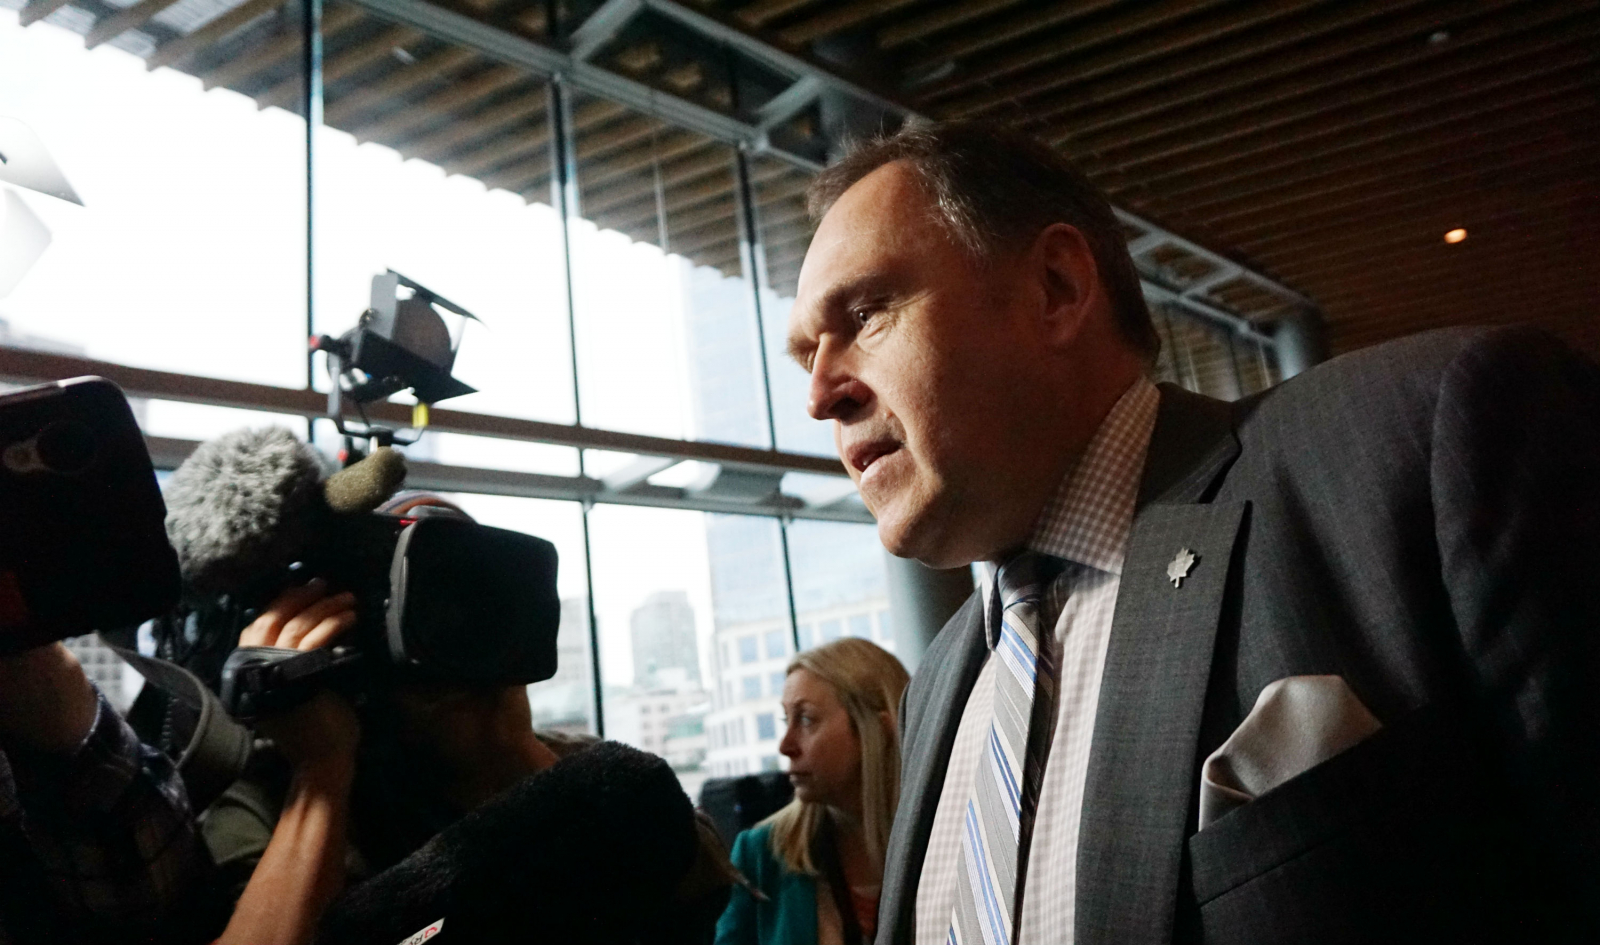 Yukon, Premier Darrell Pasloski, climate change, carbon tax, carbon pricing, Vancouver